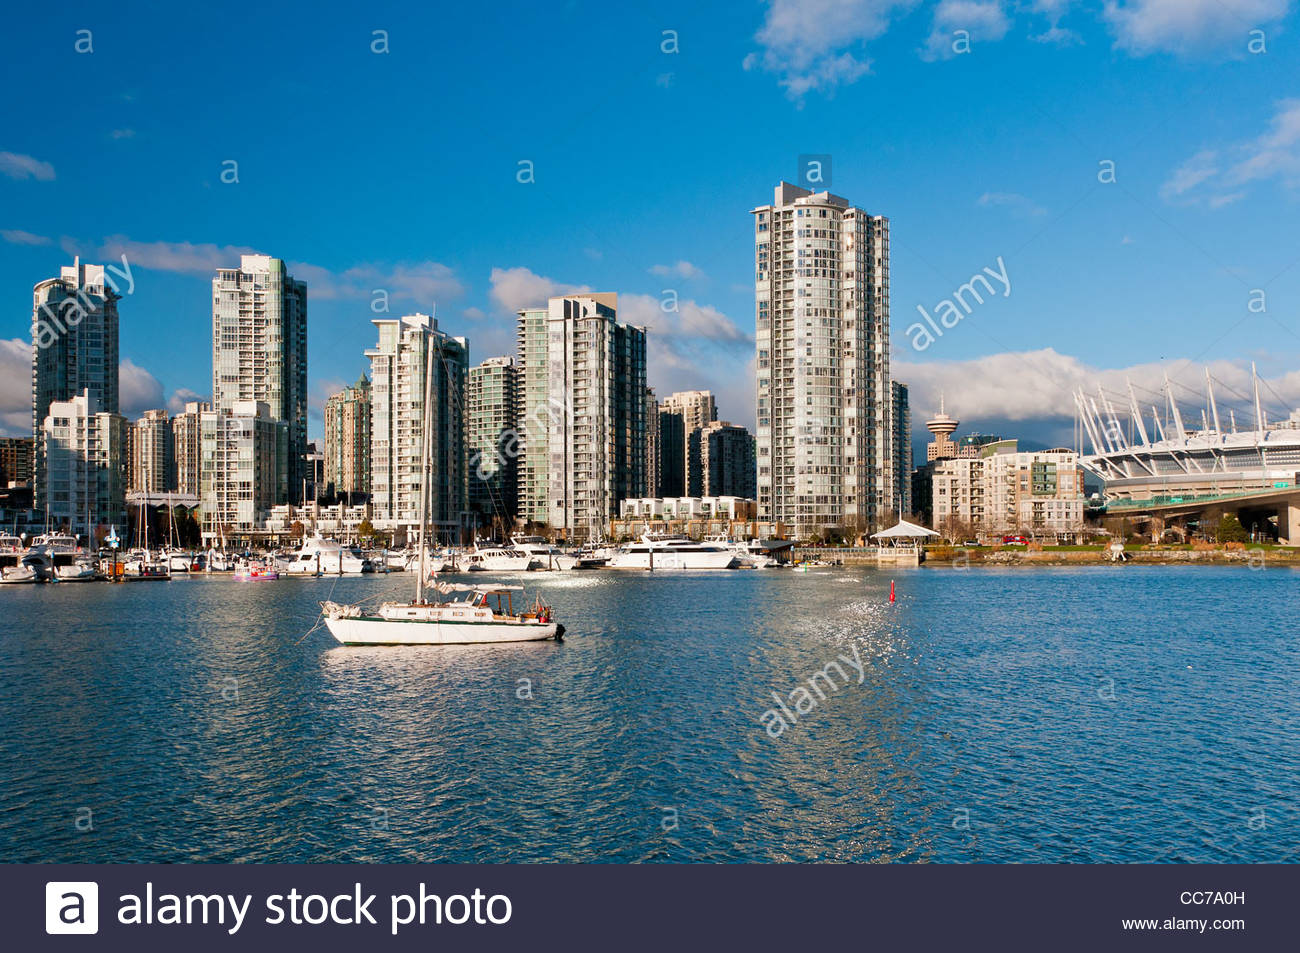 Panoramic view from Granville Island over downtown condos in Vancouver, British Columbia, Canada - Stock Image